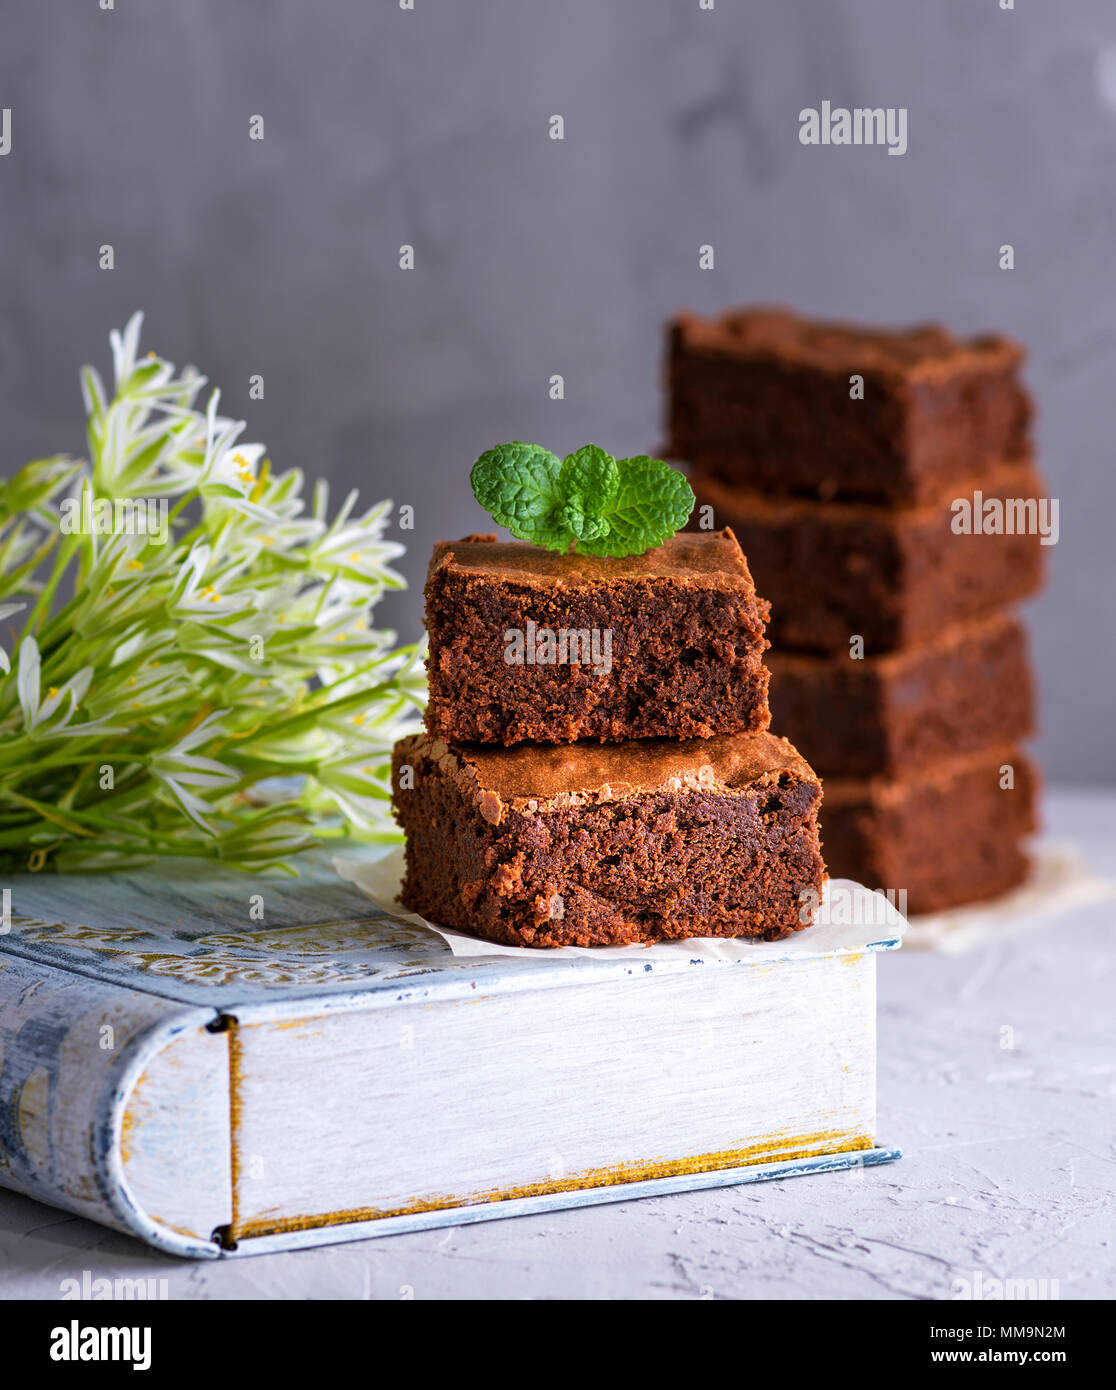 a pile of square pieces of chocolate brownie with a sprig of mint, close up Stock Photo